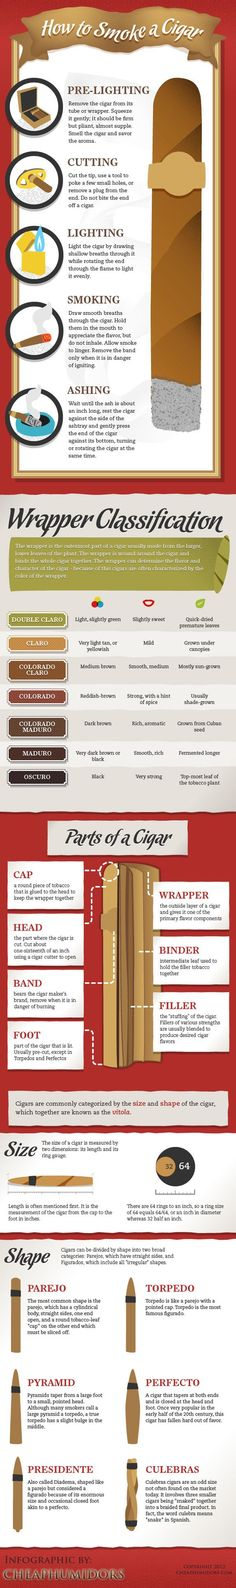 Cigar Smoking Infographic